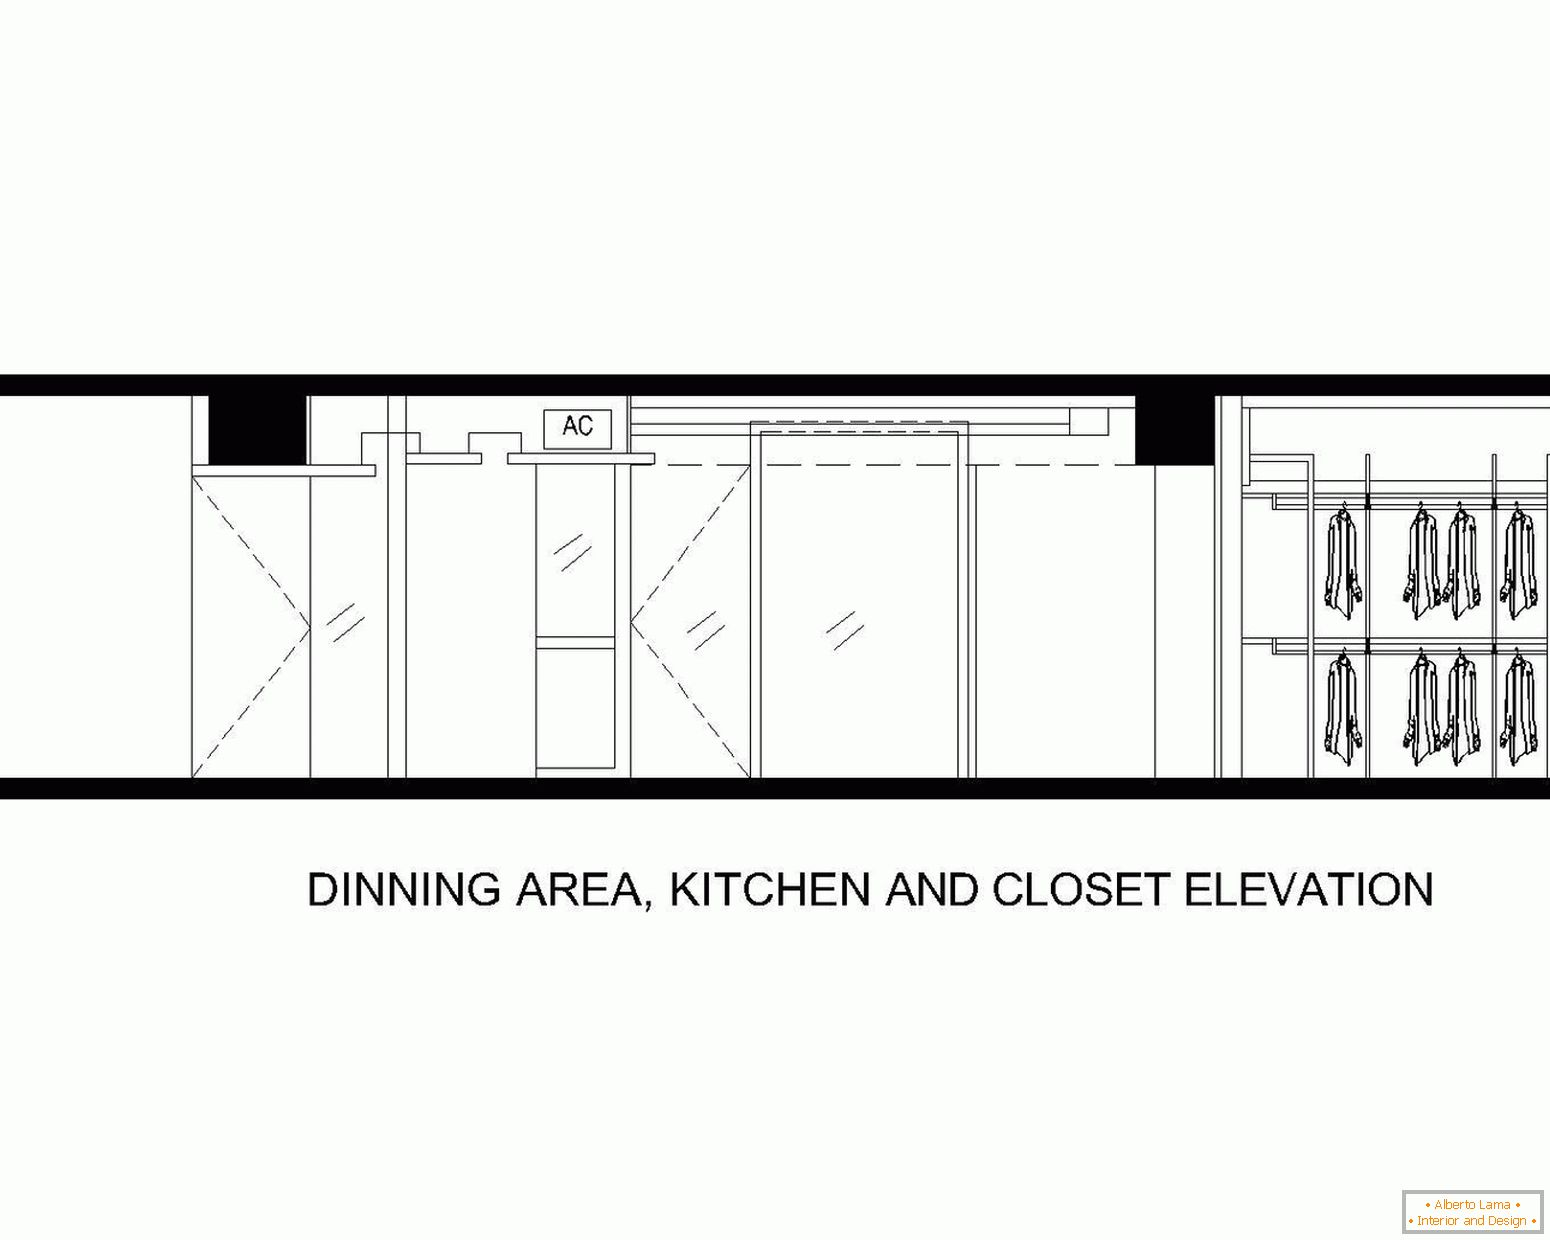 Layout of dining area, kitchen and bathroom